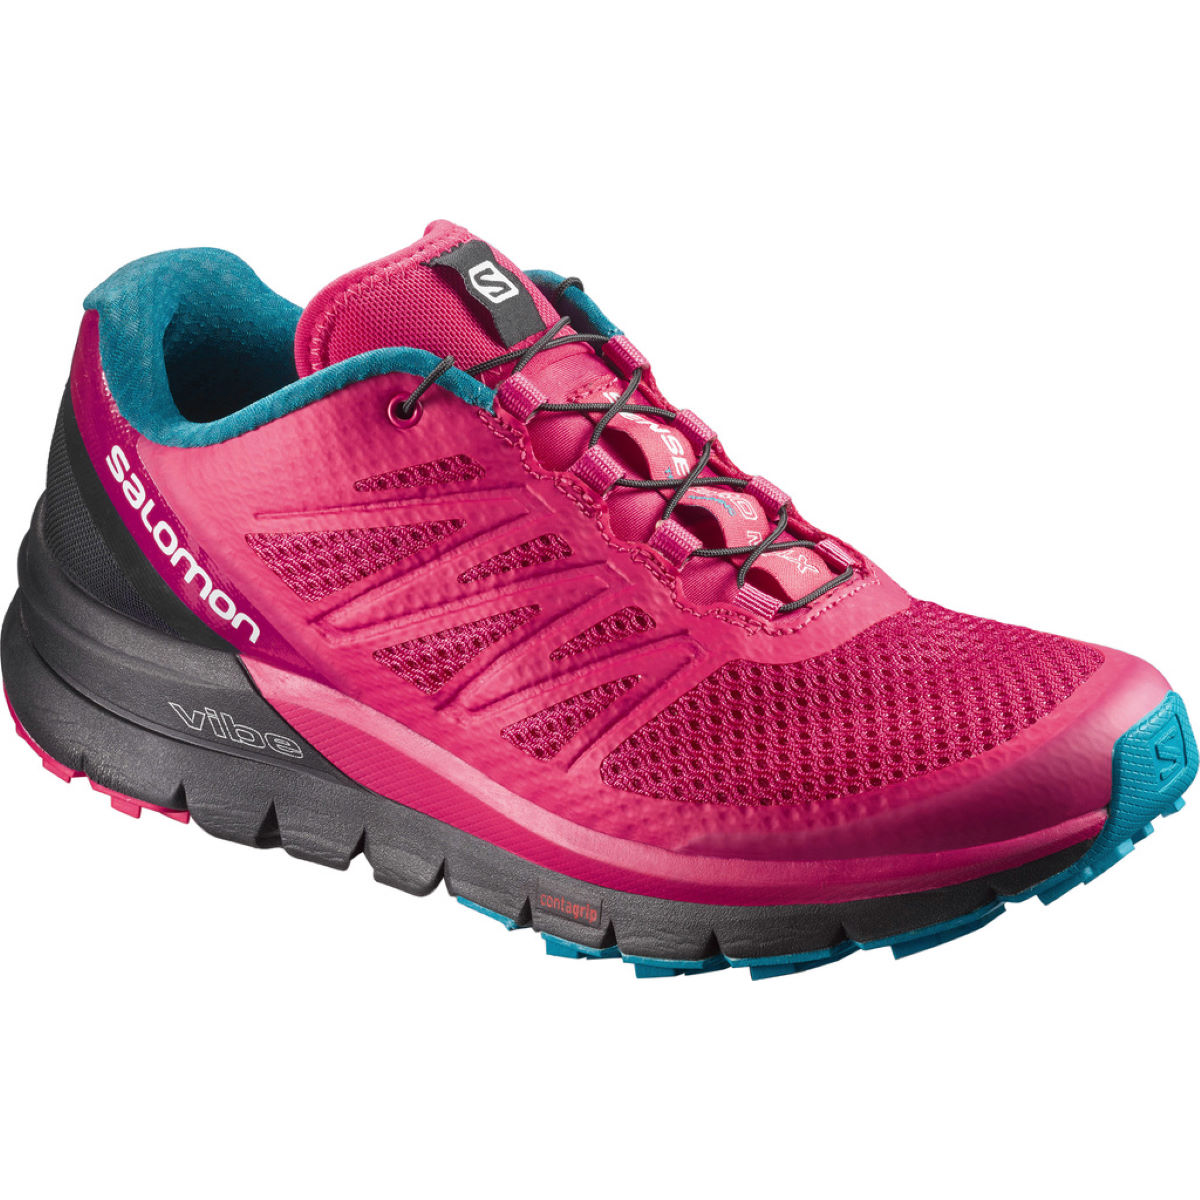 Chaussures Femme Salomon Sense Pro Max - UK 5 Virtual Pink/Black/E